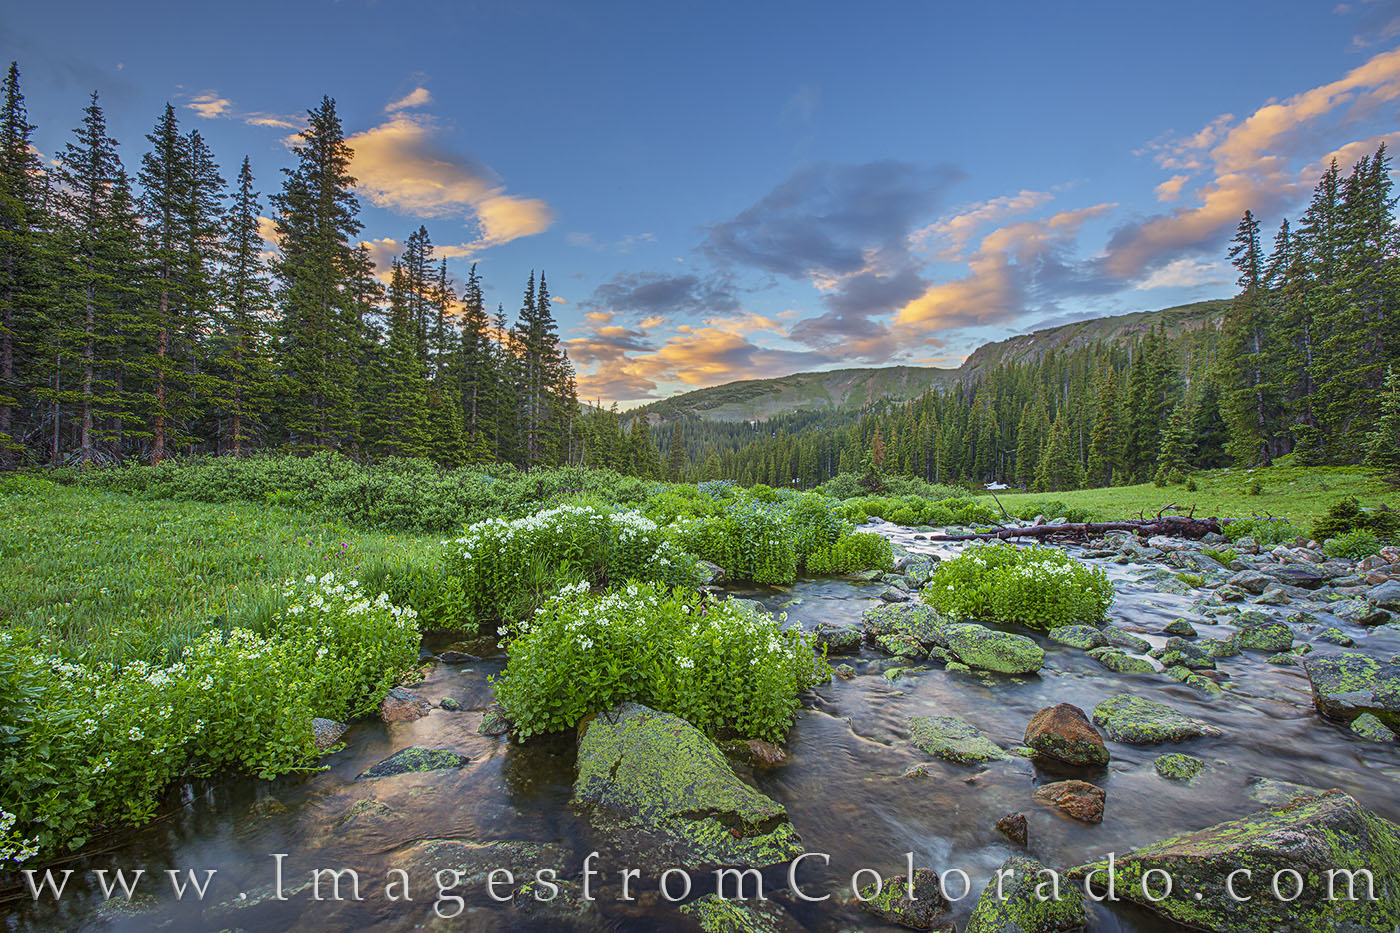 berthoud pass, sunrise, stream, water, flowers, marsh, 12, 000 feet, grand county, winter park, photo